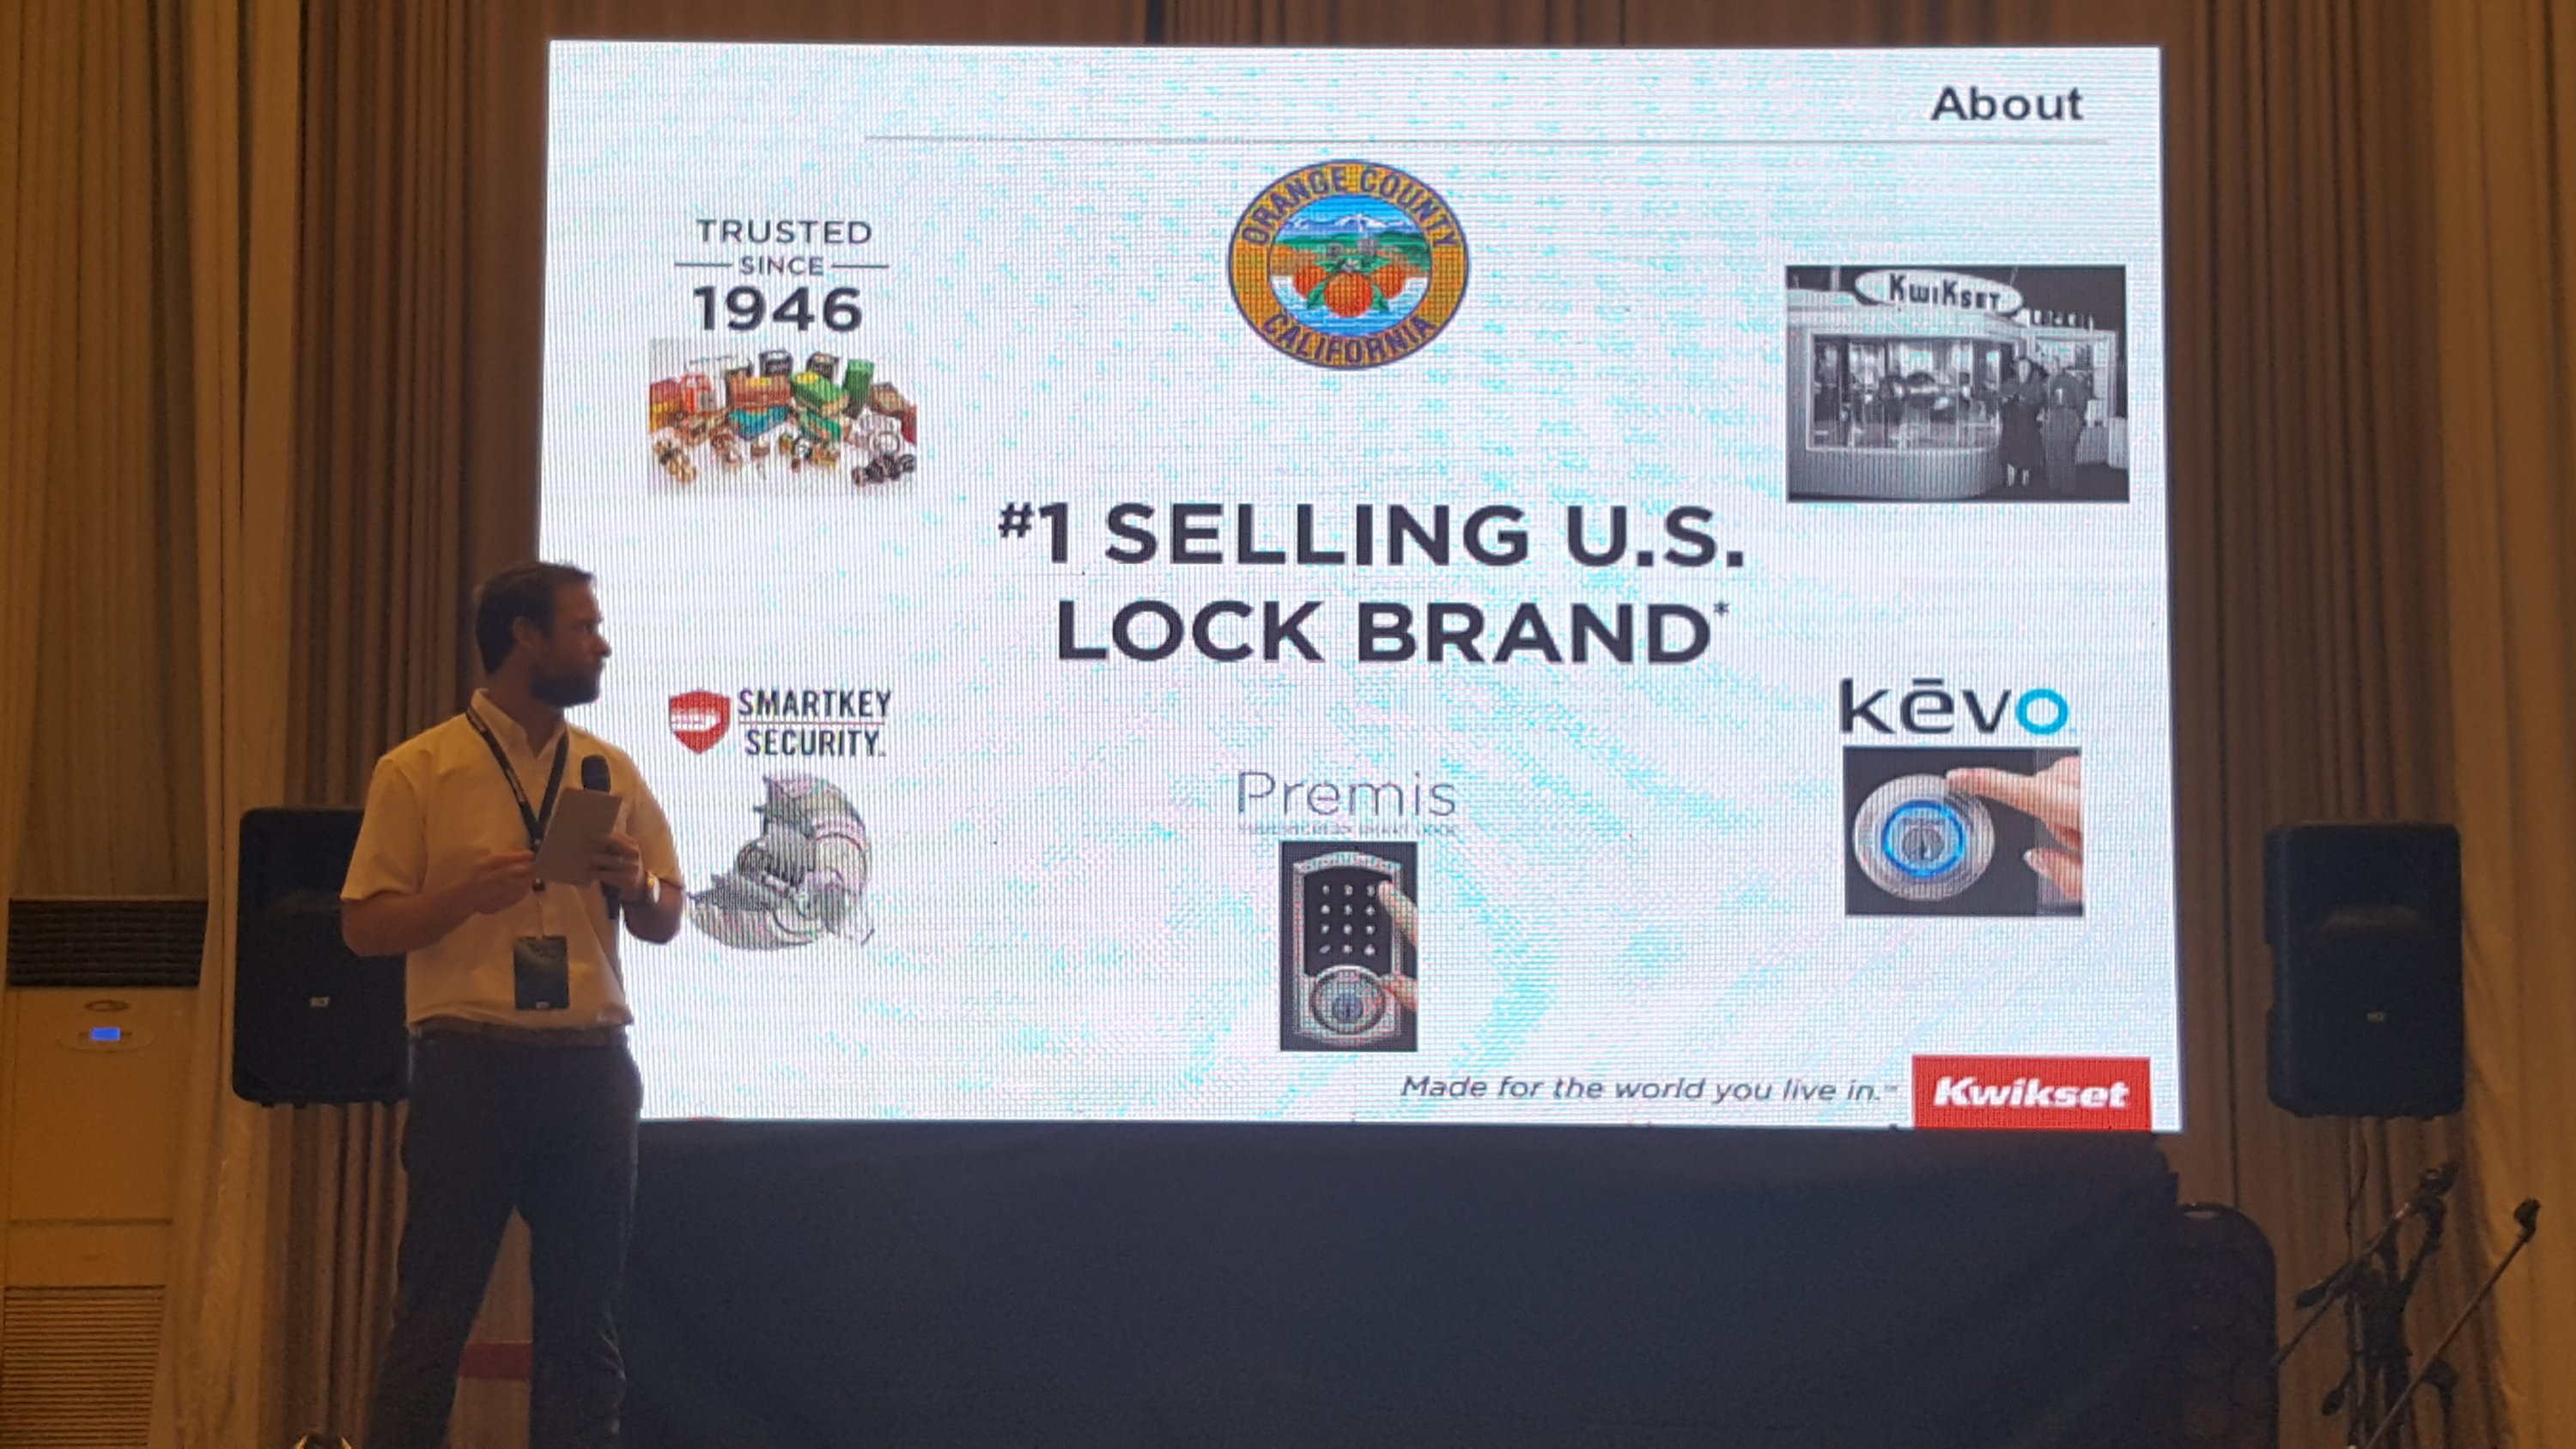 Kevin Sander, International Brand Manager, discussing Kwikset's brand's premise and promise that is